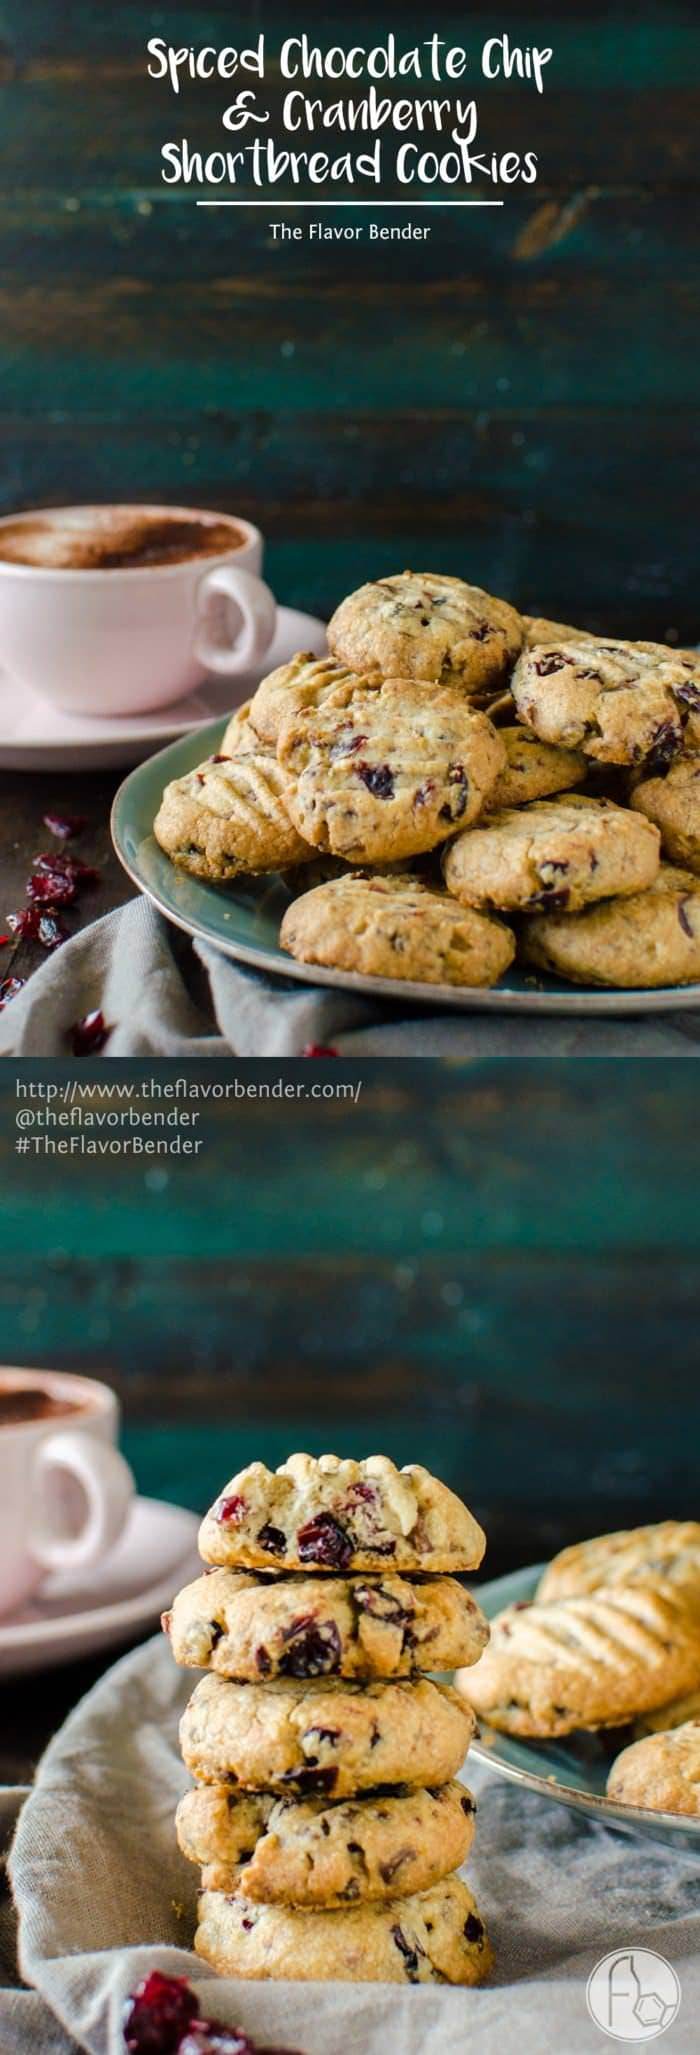 Chocolate Chip & Cranberry Shortbread Cookies - Crisp, buttery, crumbly shortbread cookies, studded with bits of milk chocolate and dried cranberries and spiced with warming spices like cinnamon, nutmeg and allspice, that are unbelievably (repeat, unbelievably!) easy to make and great for holiday baking!